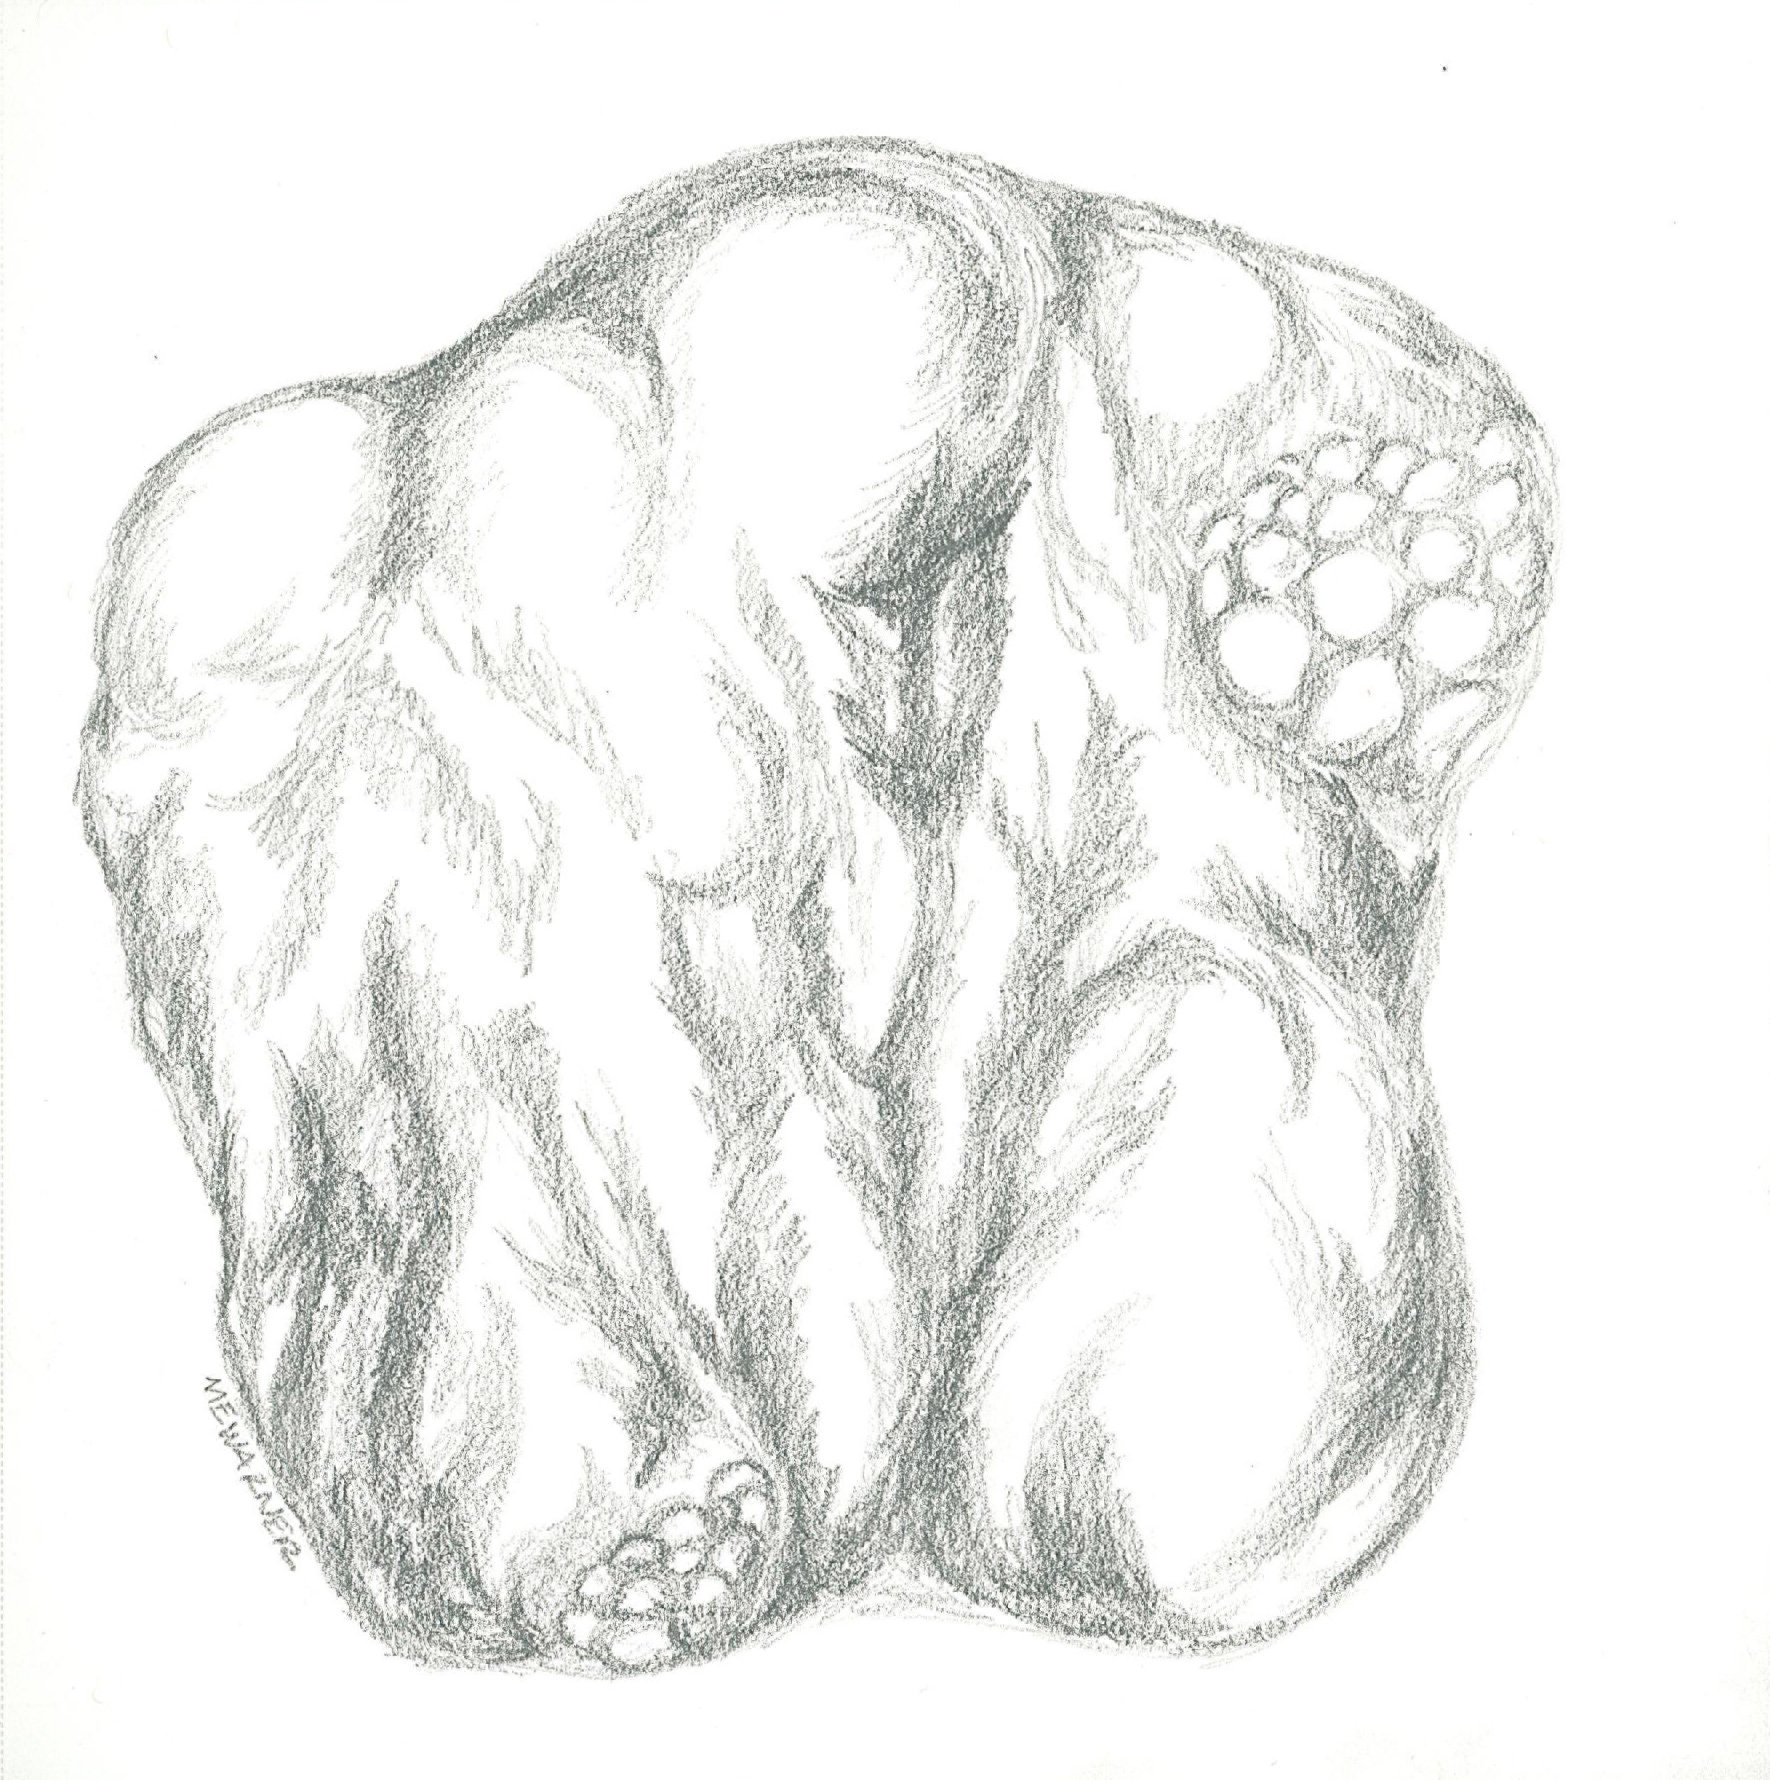 Imaginary rock, pencil, Mary Warner, 2014.